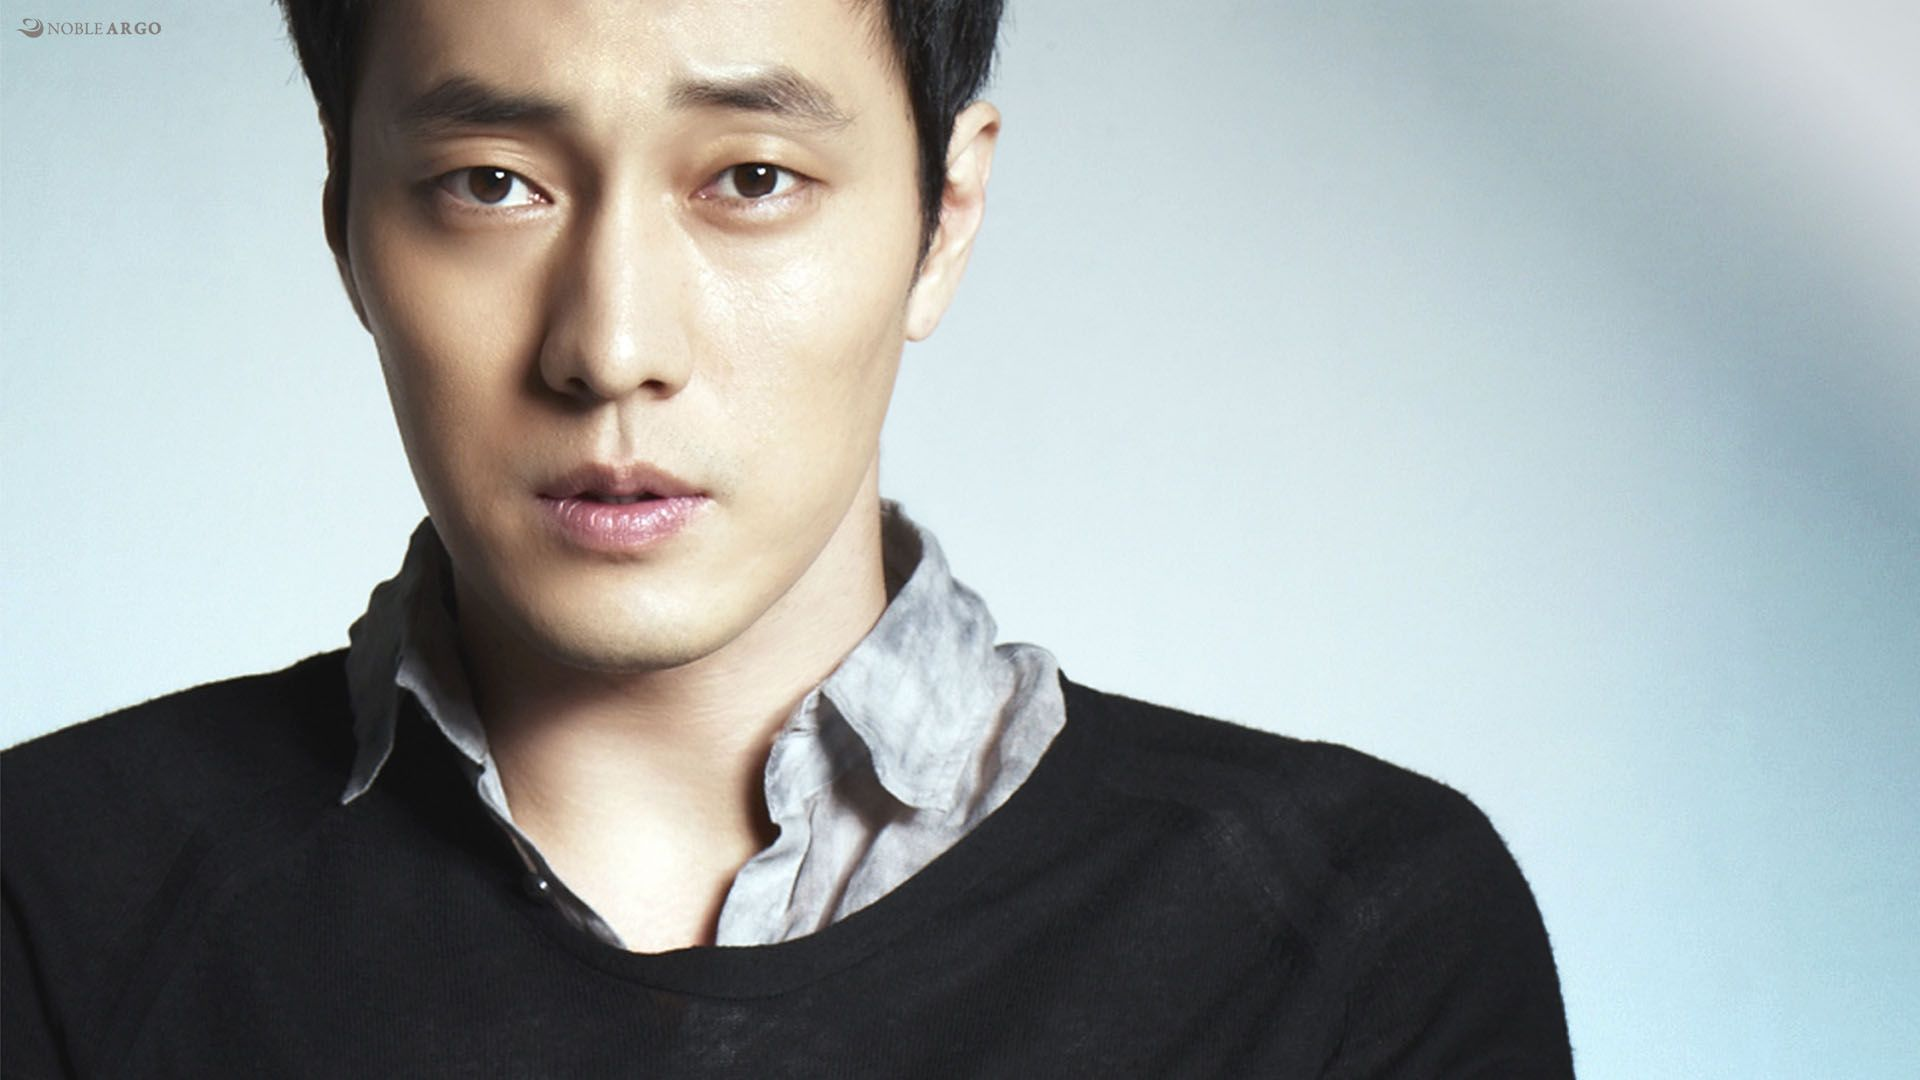 Born in 1977, Does So Ji-sub Have a Wife Now?   Channel-K